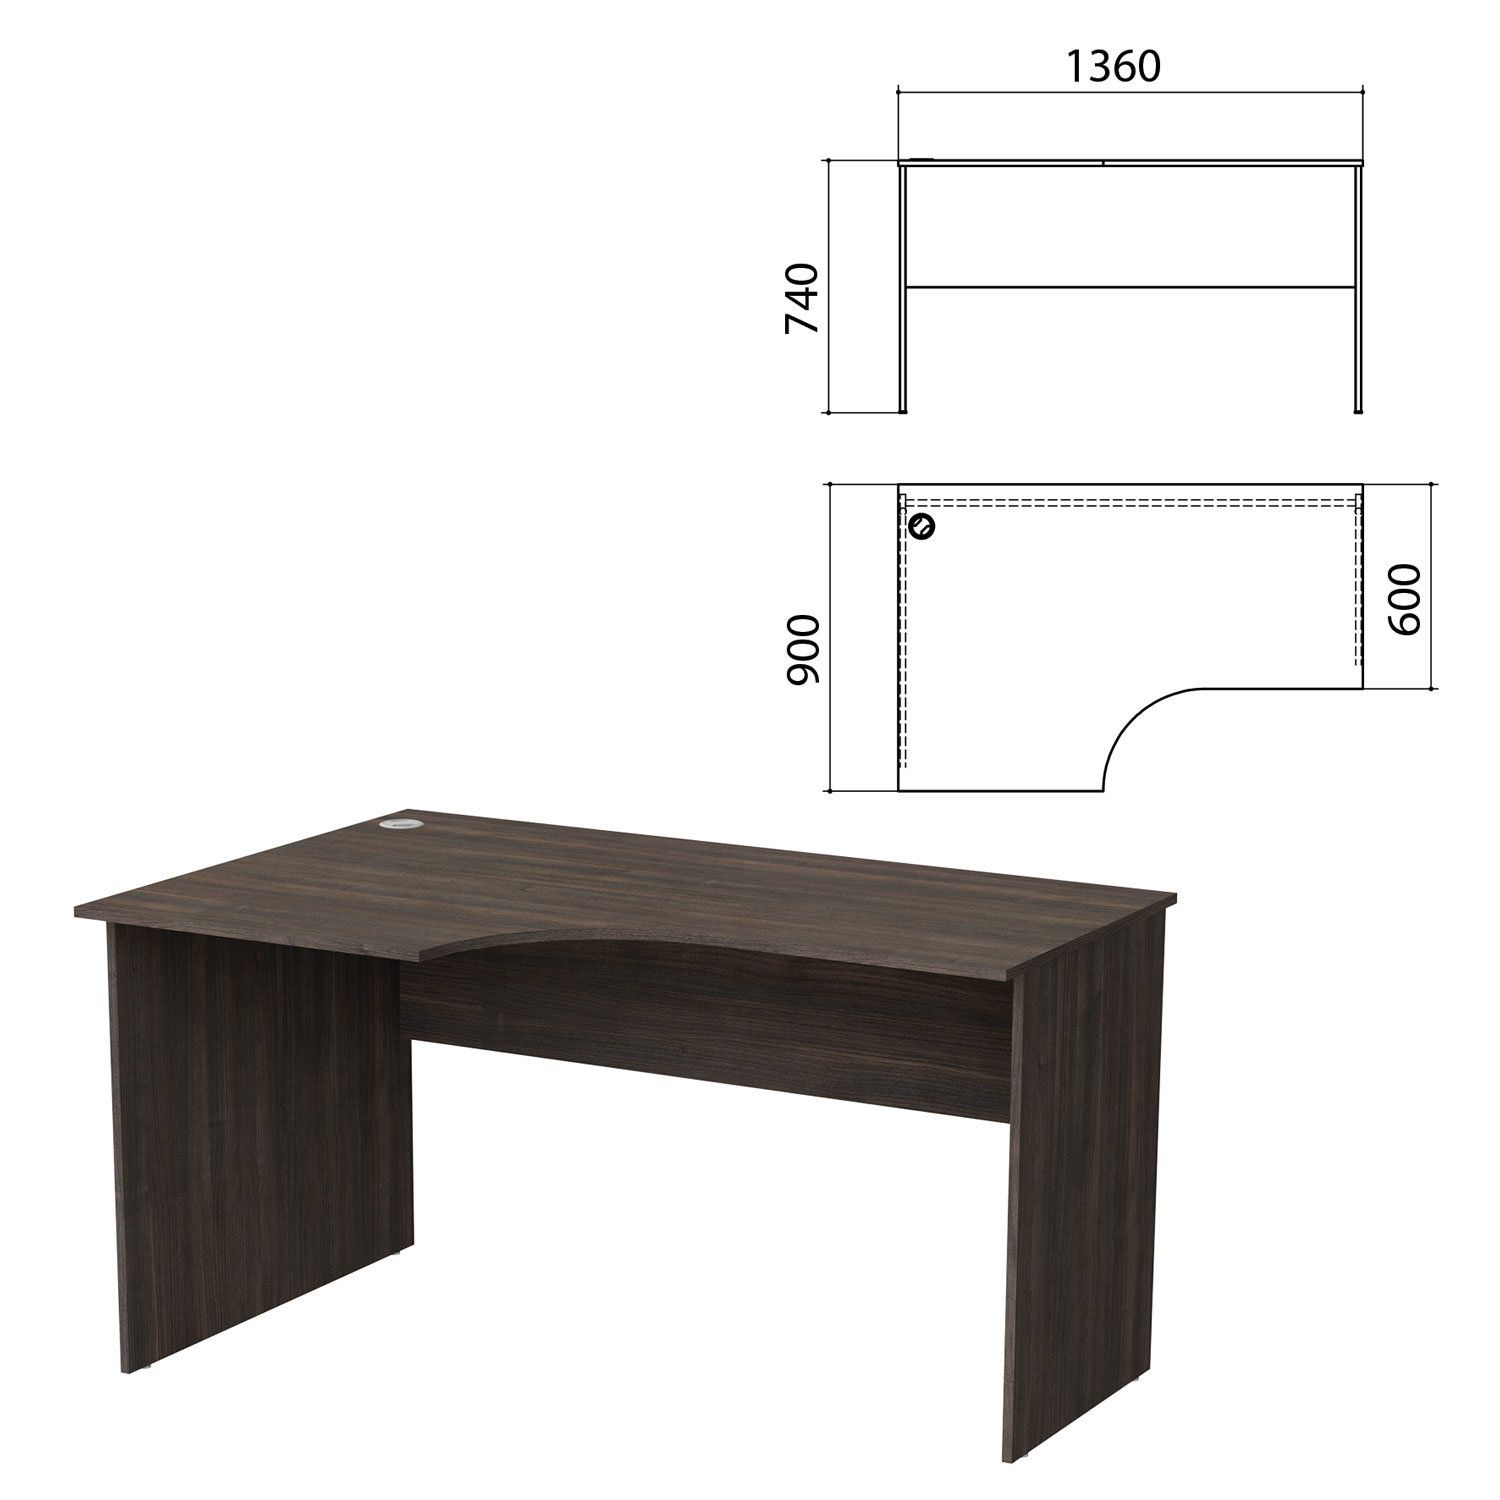 "Table written ergonomic ""Budget"" 1360 x900s740 mm, left, oak toledo"